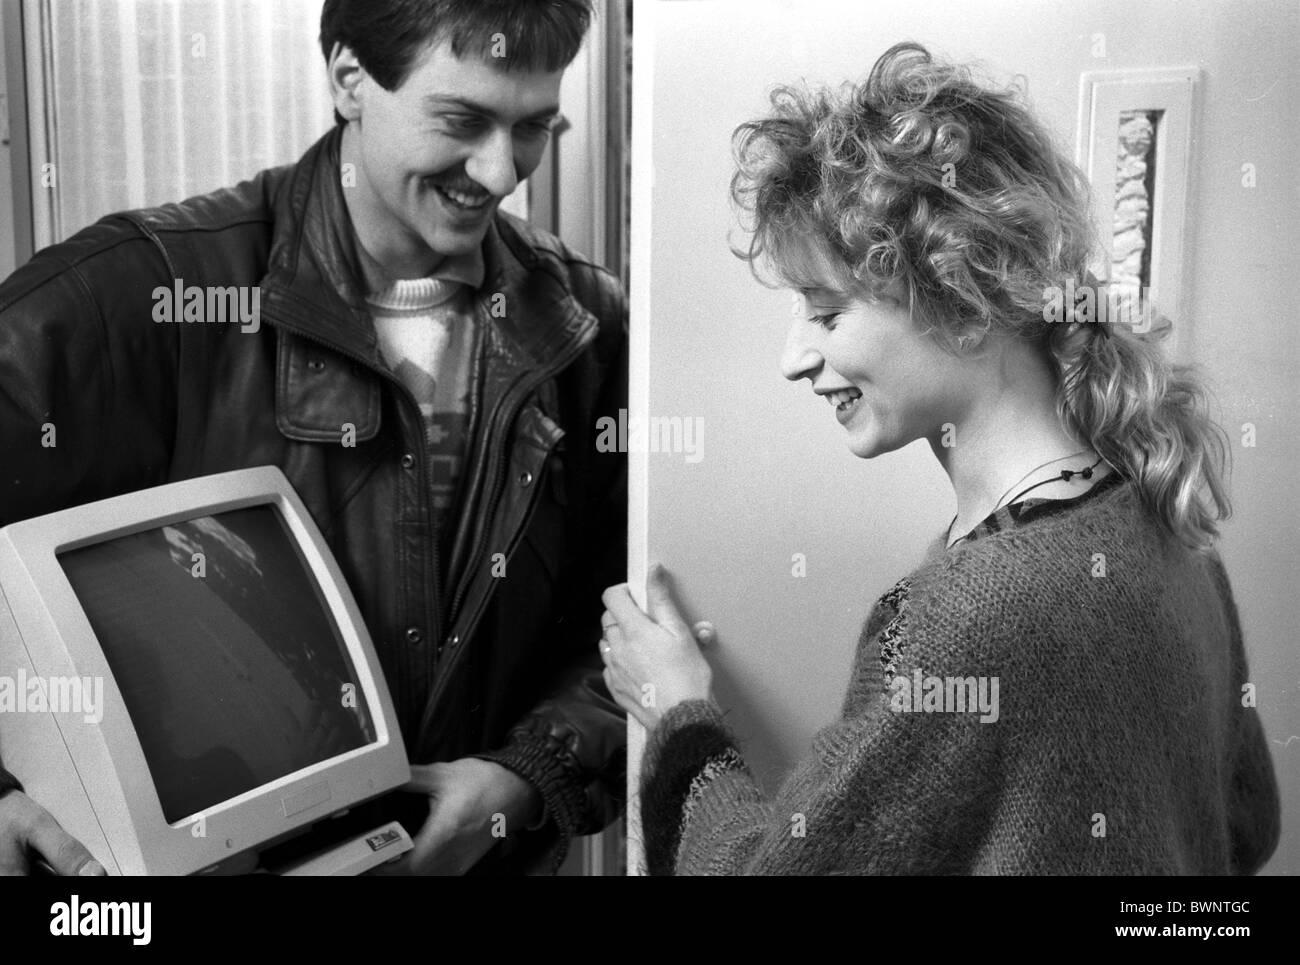 1981 Woman getting her first computer from man standing at front door holding computer screen in his hands, both - Stock Image